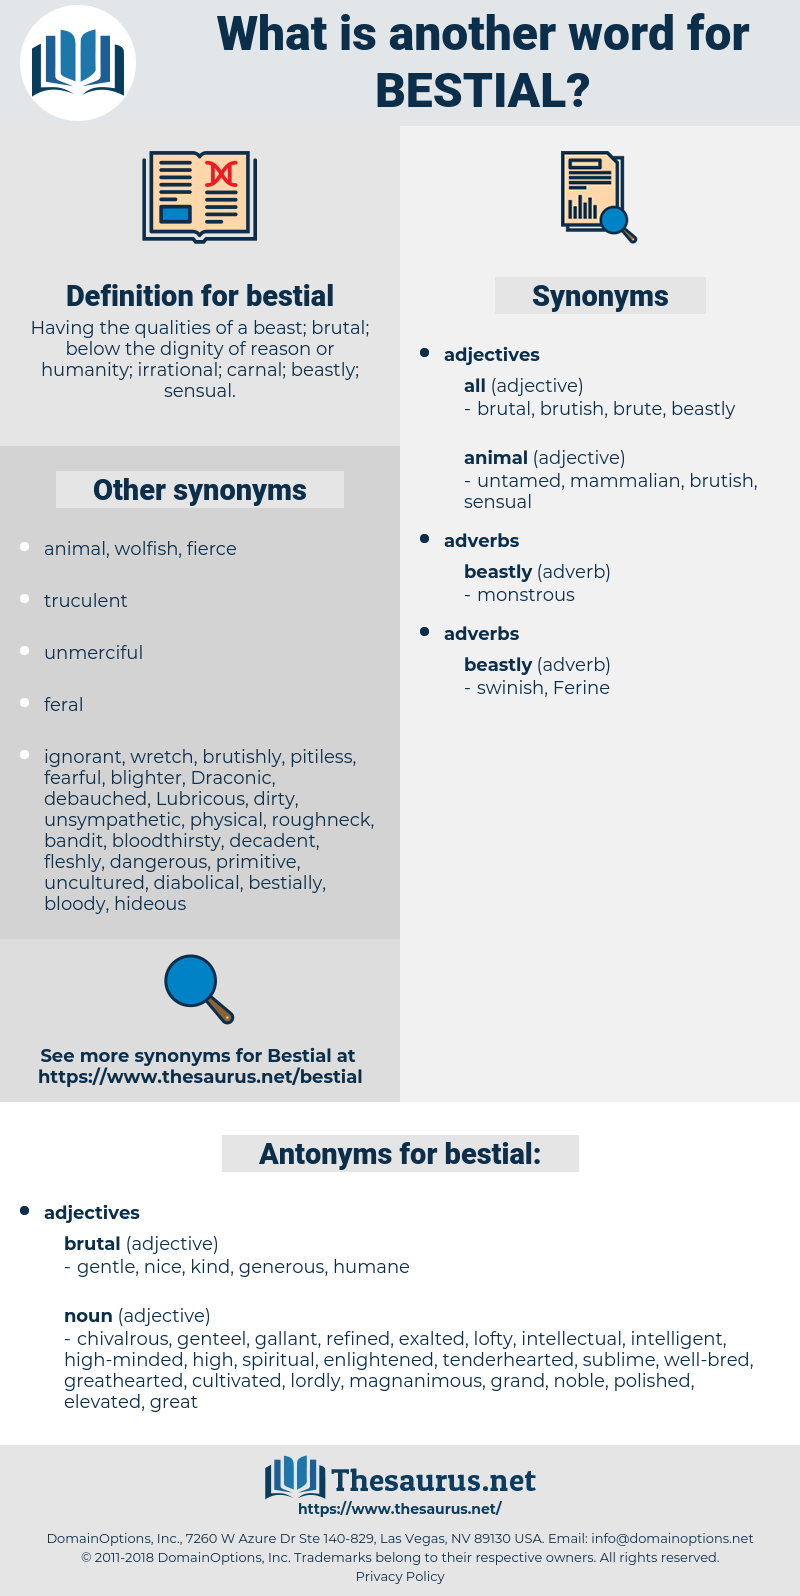 bestial, synonym bestial, another word for bestial, words like bestial, thesaurus bestial